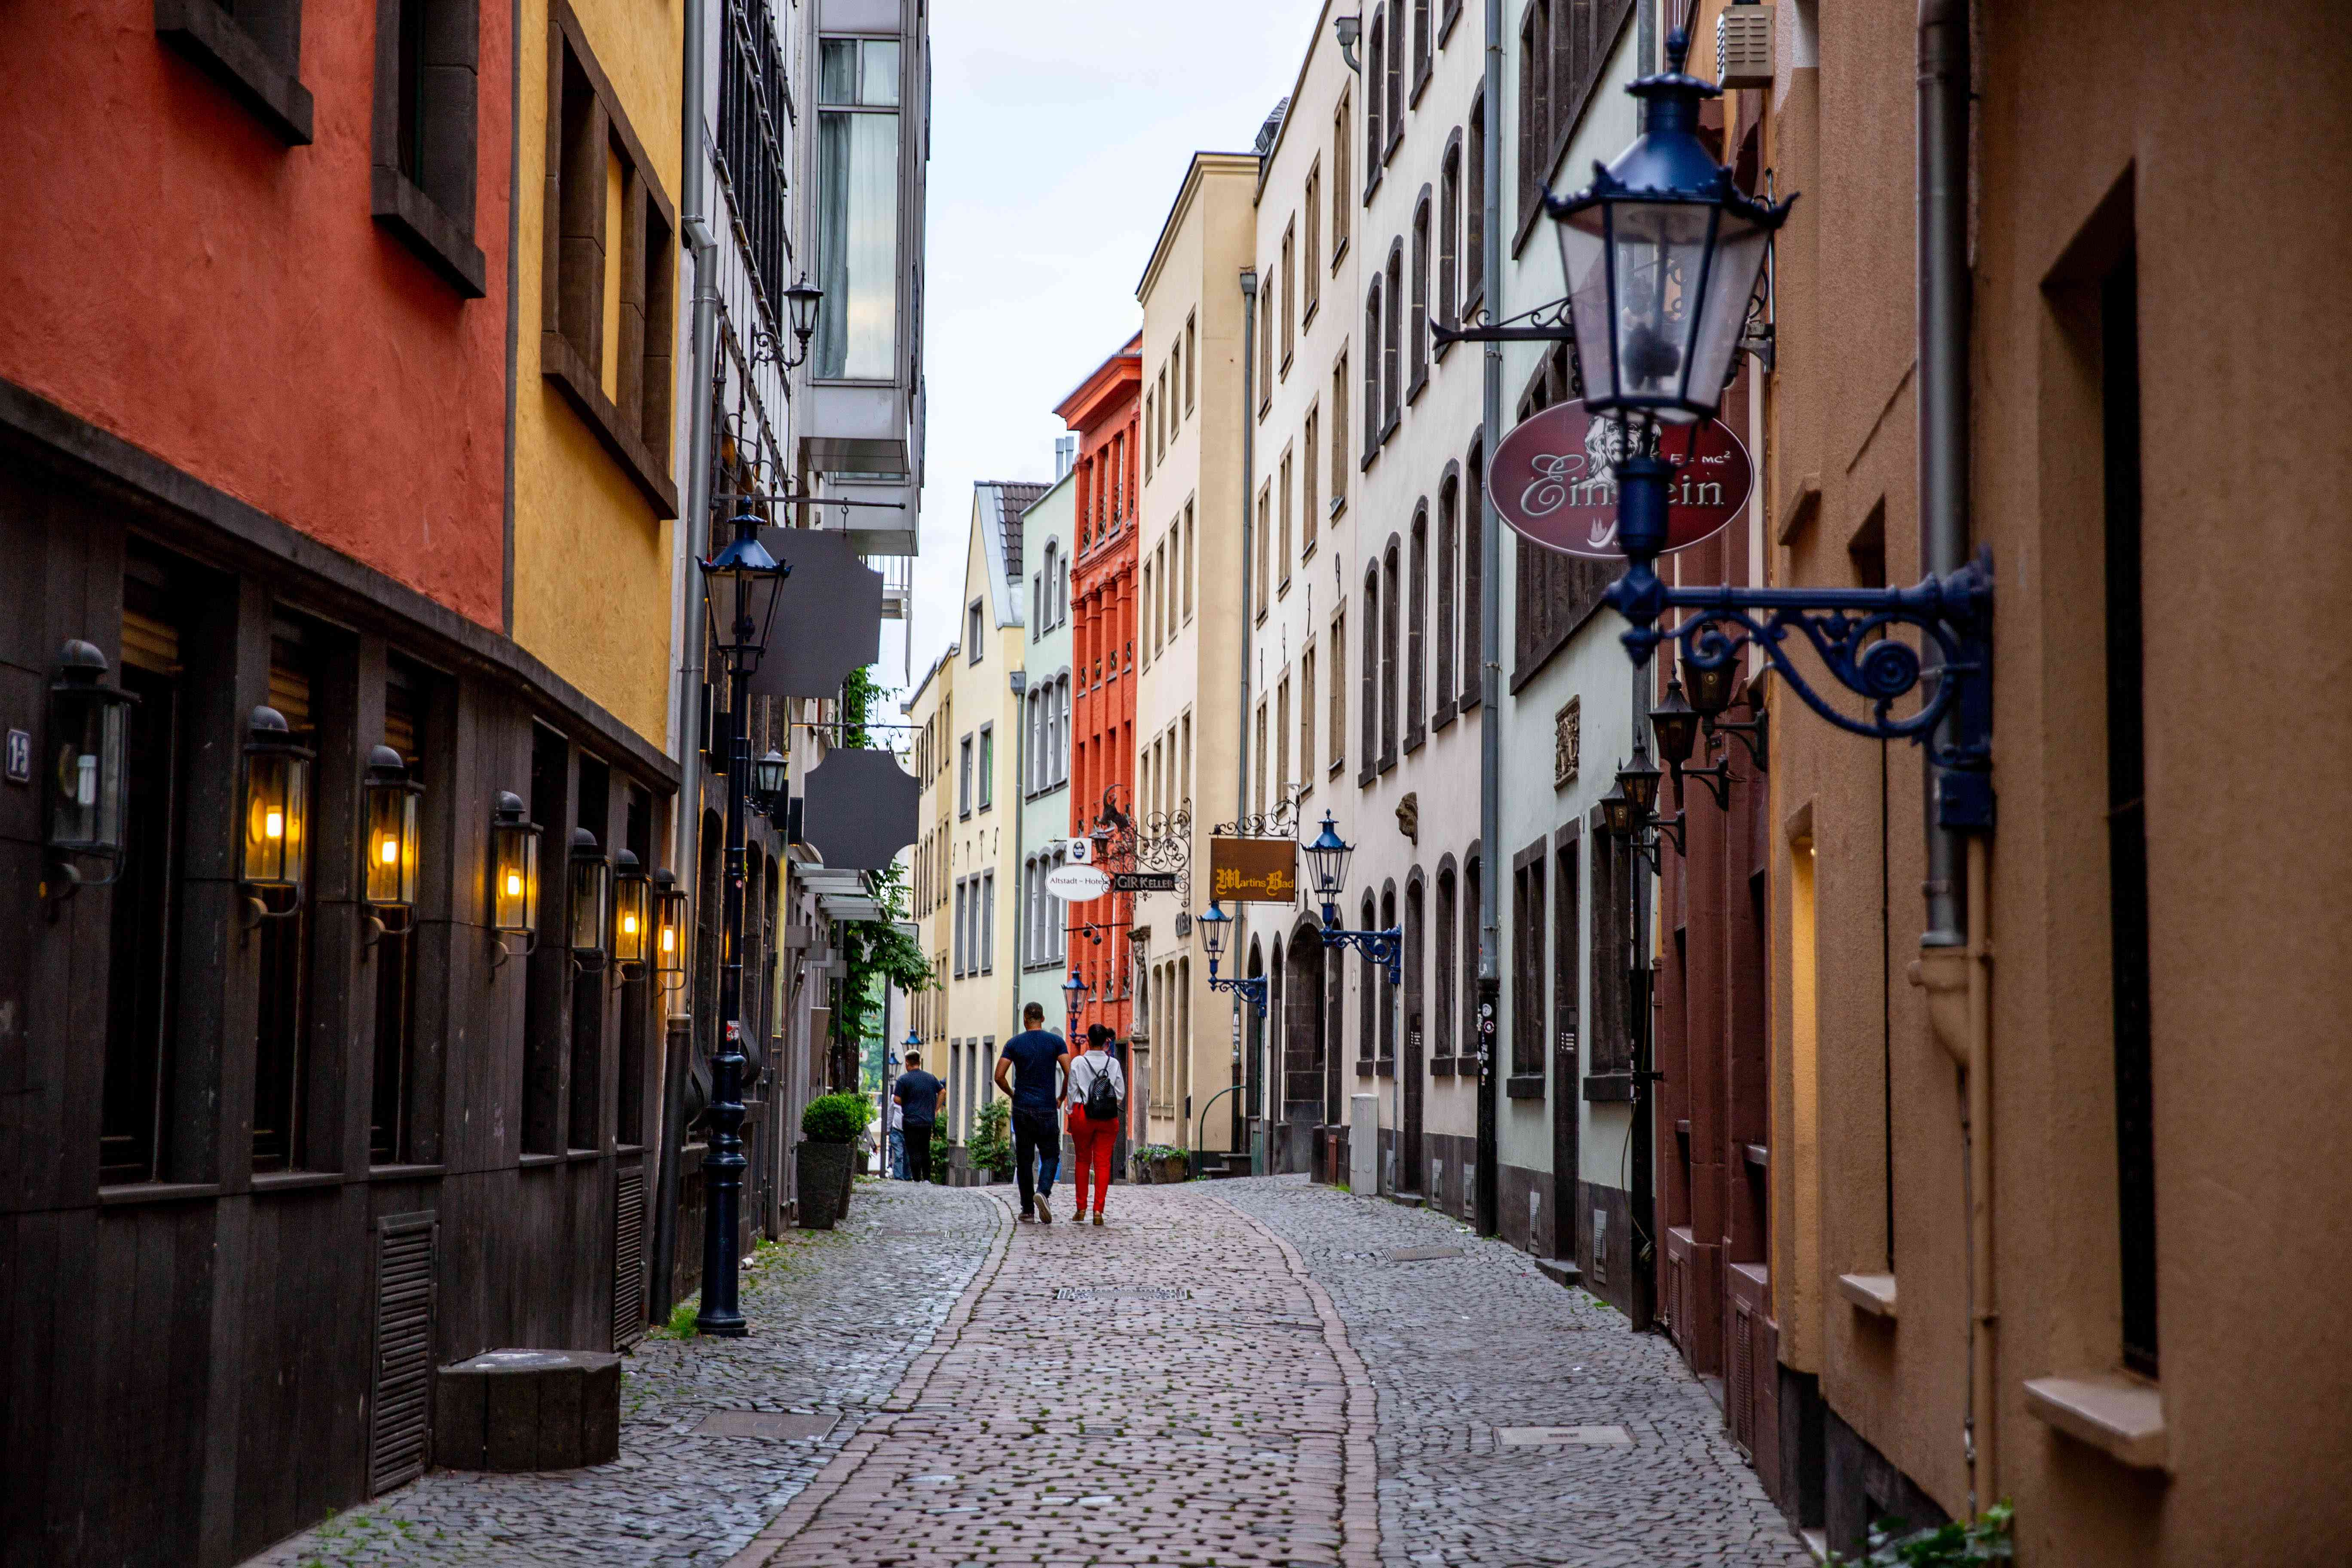 People walking down a cobblestone street in the Old Town of COlogne